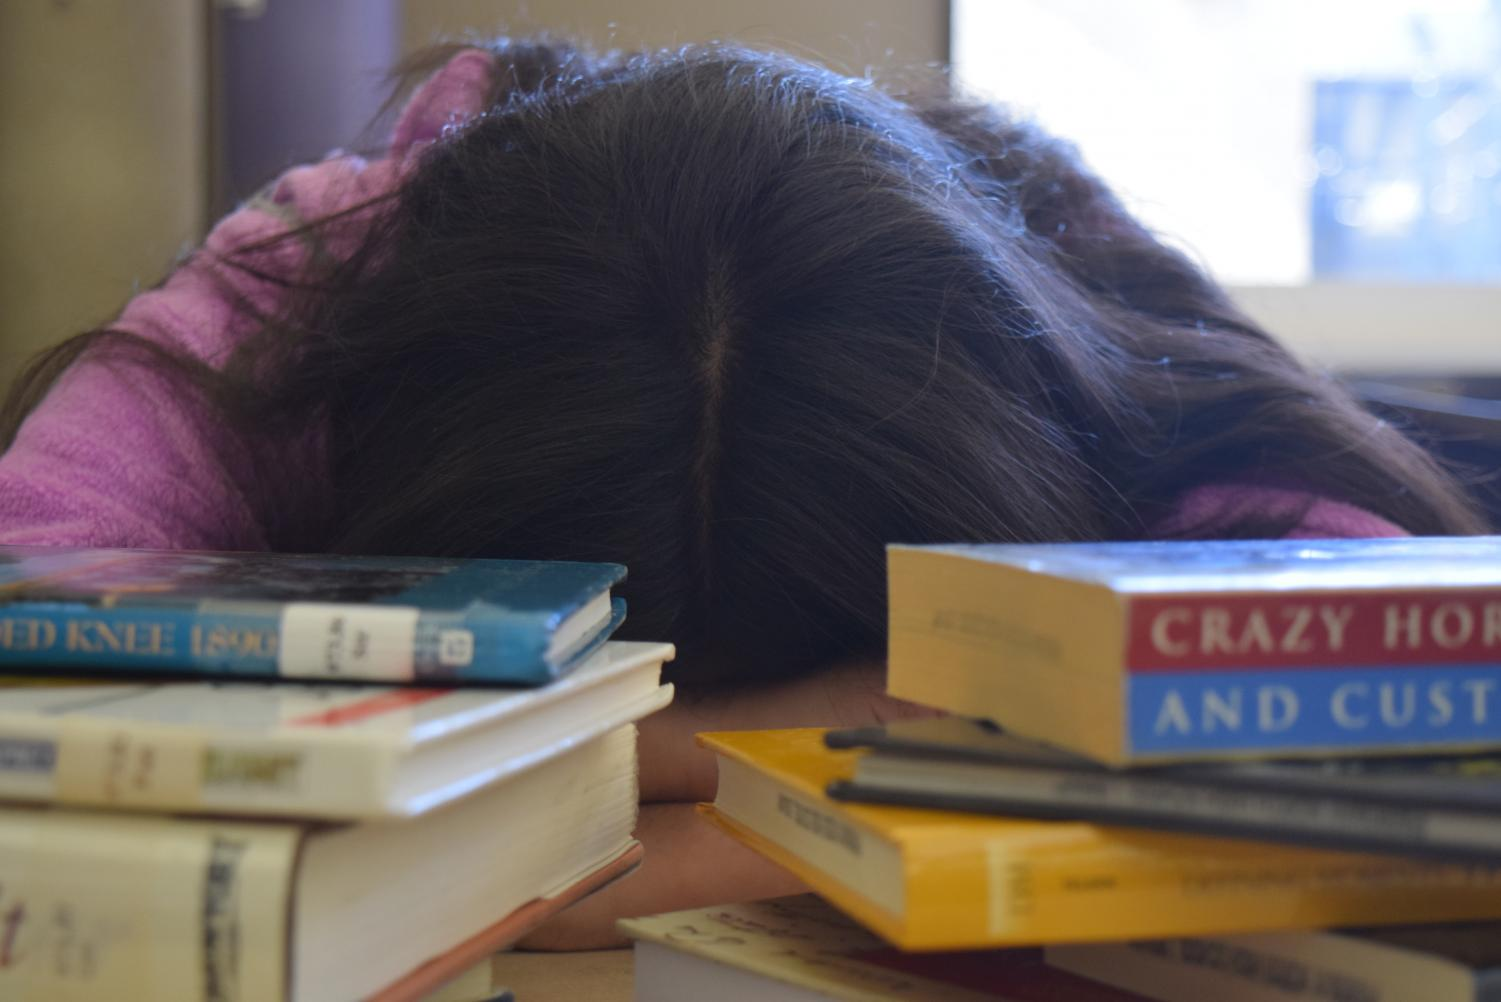 Finals week is very stressful for students. If students find themselves overwhelmed, they can reach out to their academic lab teachers and school counselor for guidance.